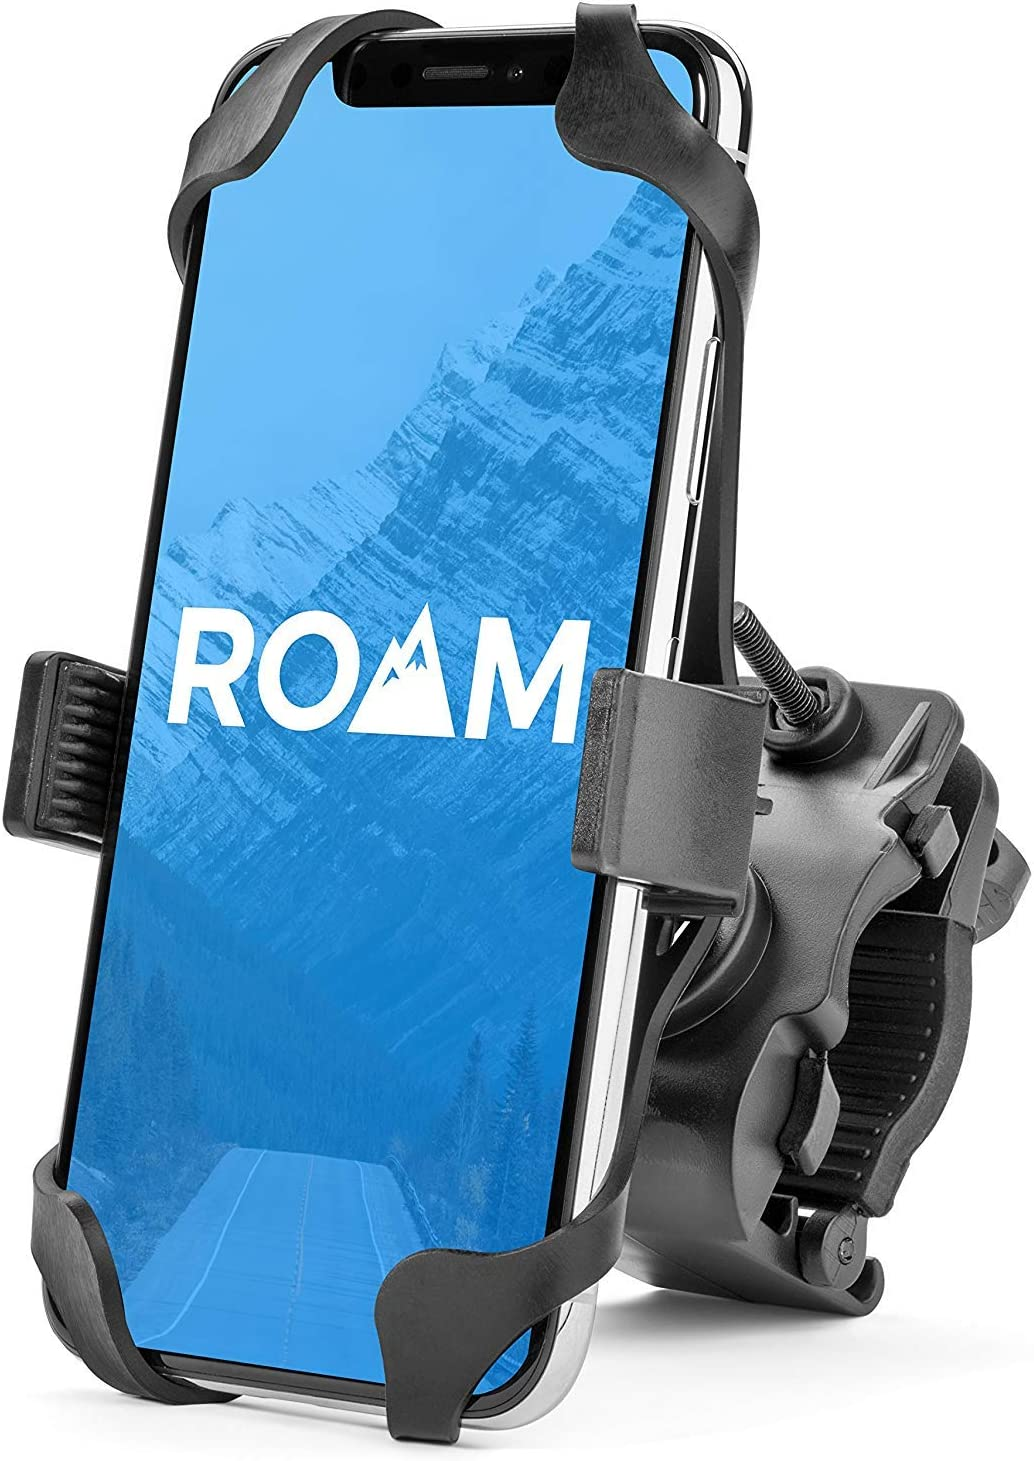 Roam Universal Premium Bike Phone Mount for Motorcycle